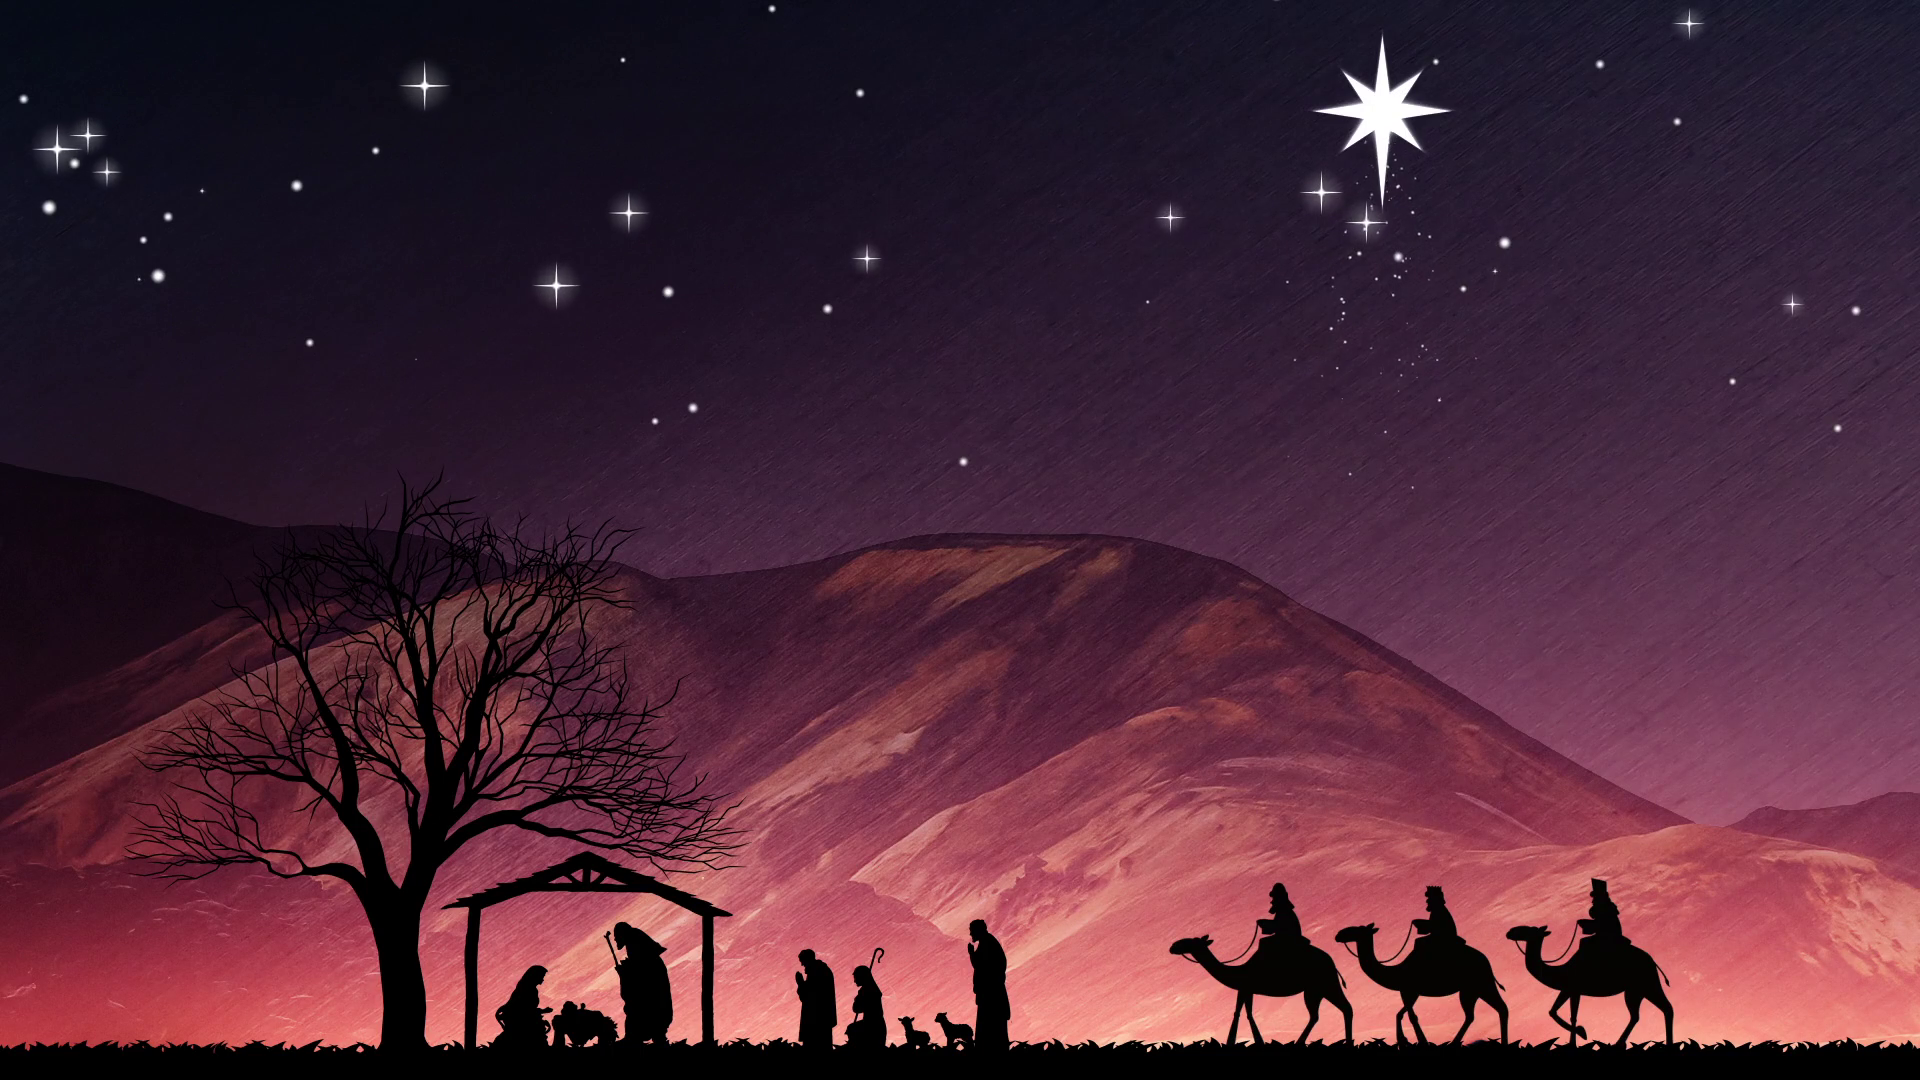 christmas-nativity-scene-shepherds-wise-me-and-large-bethlehem-star_rb-uzogme_thumbnail-full01.png